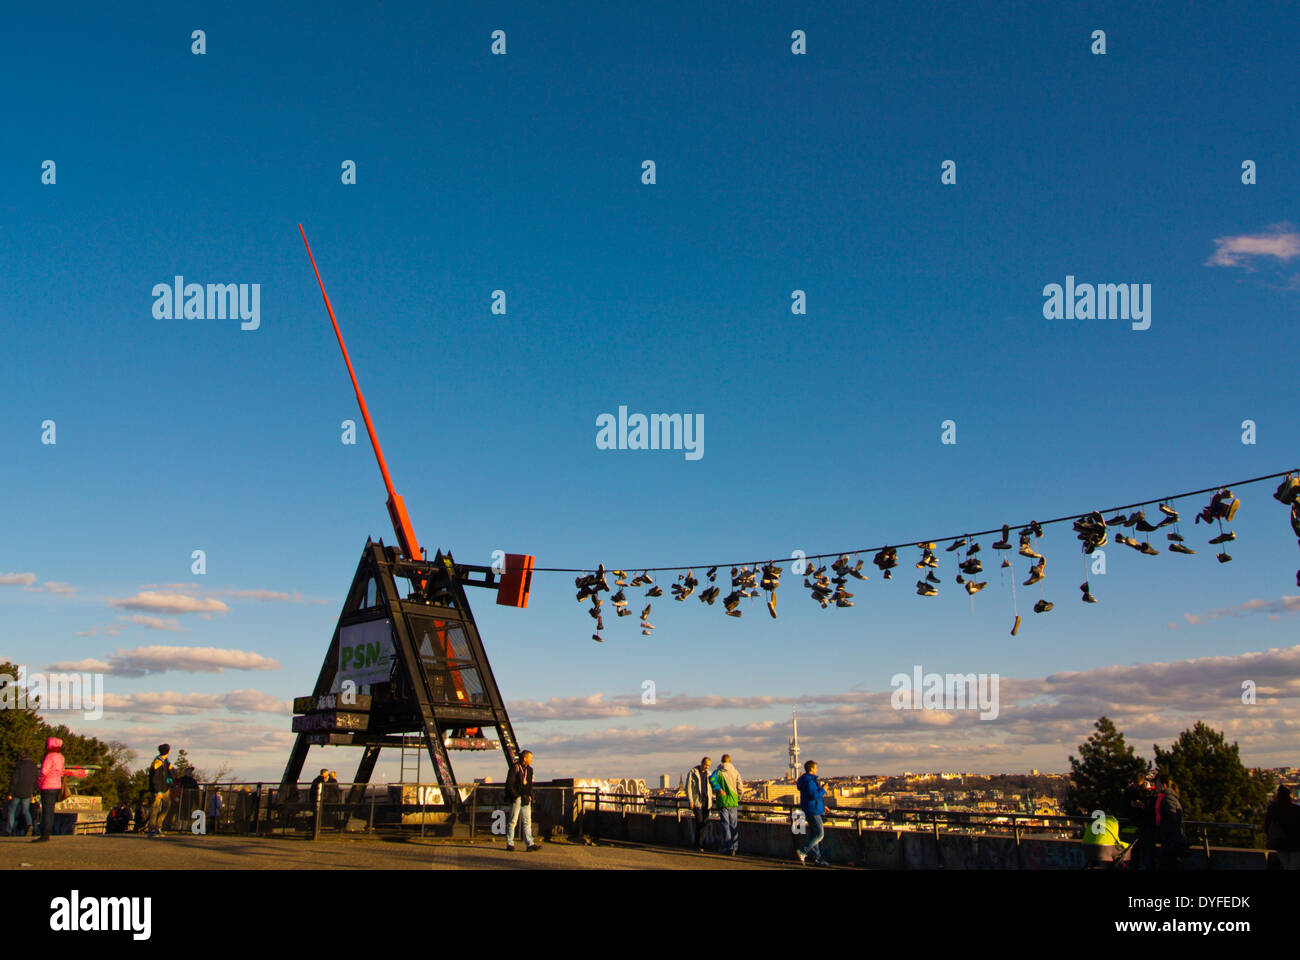 The metronome (1991), Letenske Sady park, Prague, Czech Republic, Europe - Stock Image